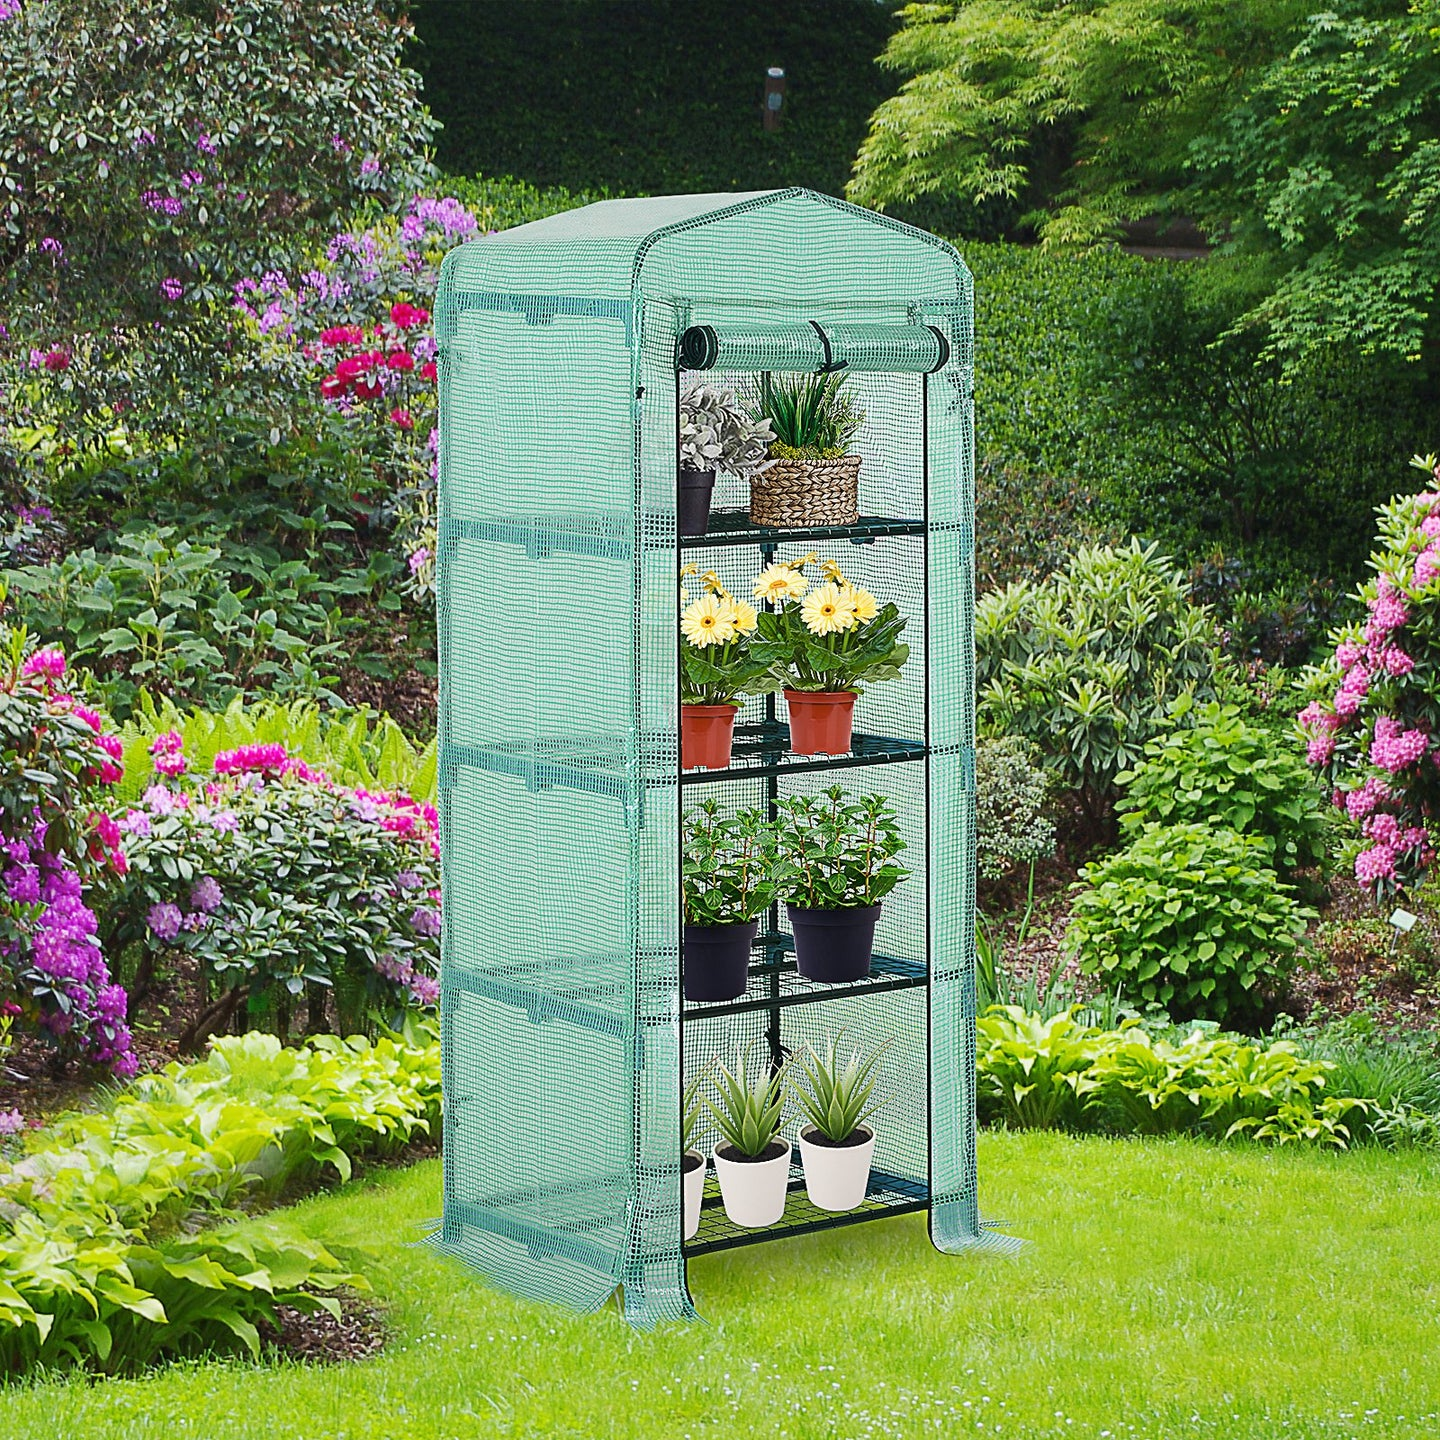 Outsunny 160x70x50cm PVC Grid Cover Steel Frame 4-Tier Mini Greenhouse Green